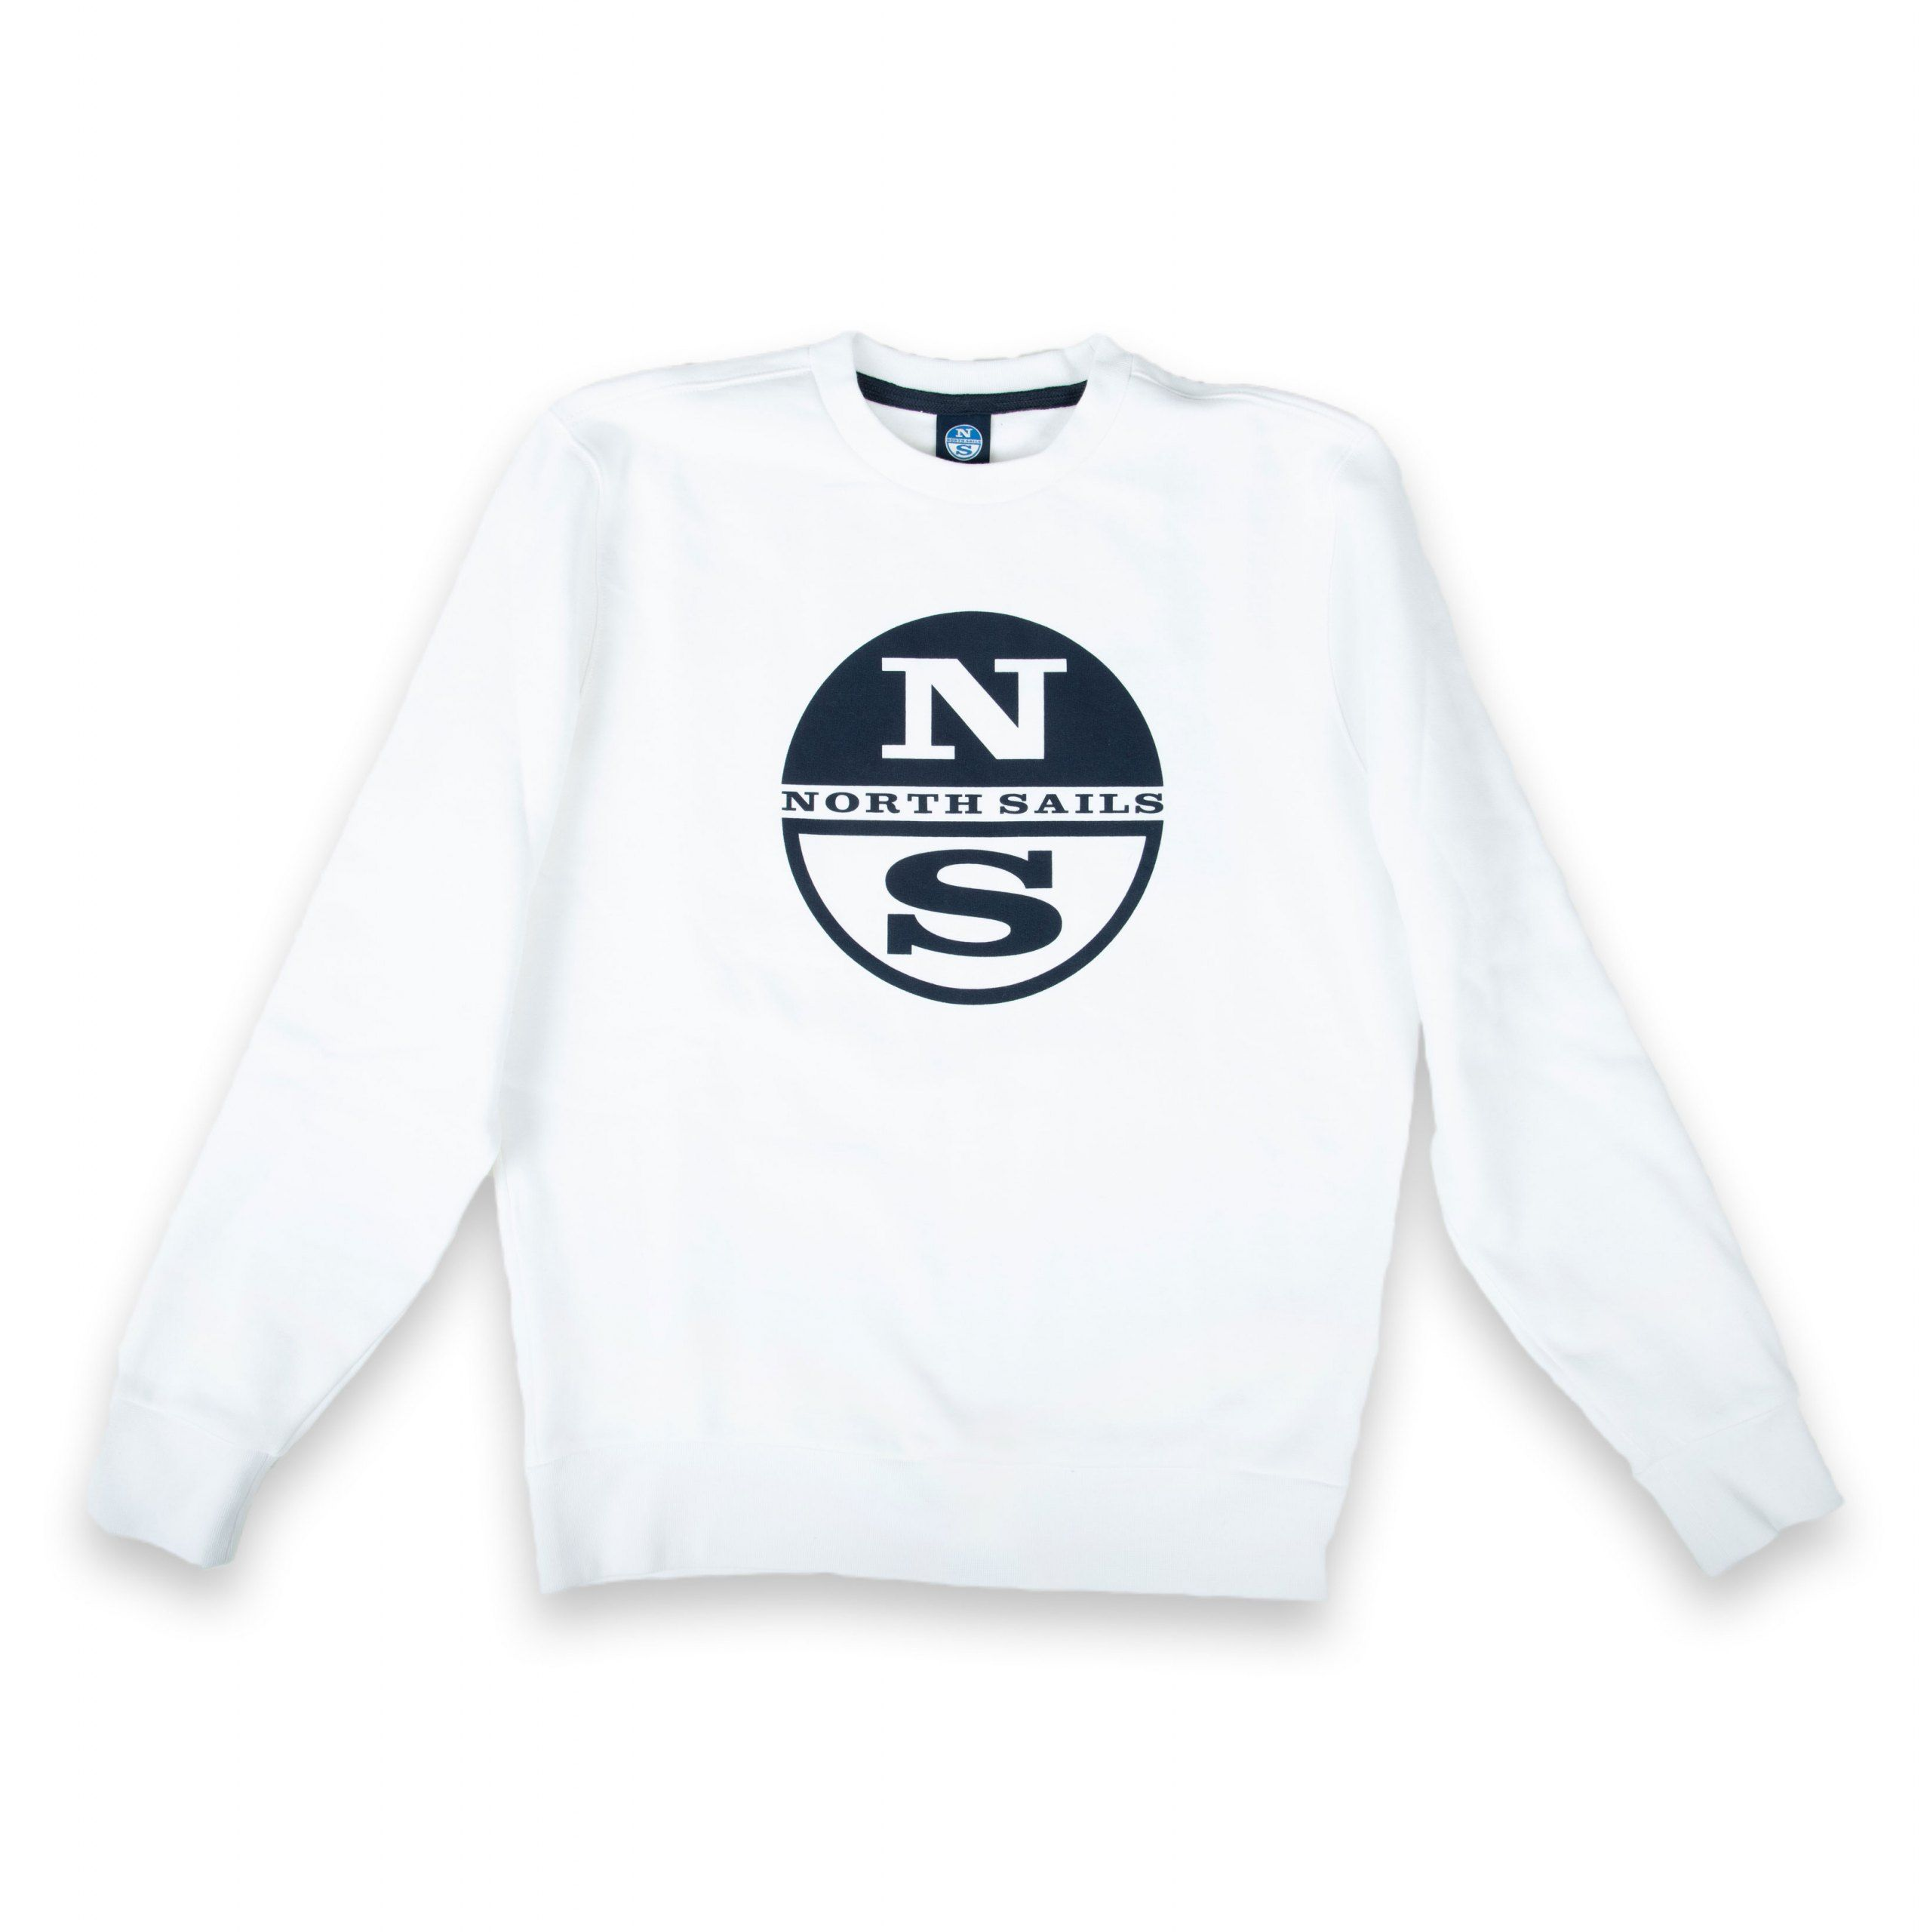 Poloshow North Sails Sweatshirt Weiß Graphic 691542 000 0101 500 1